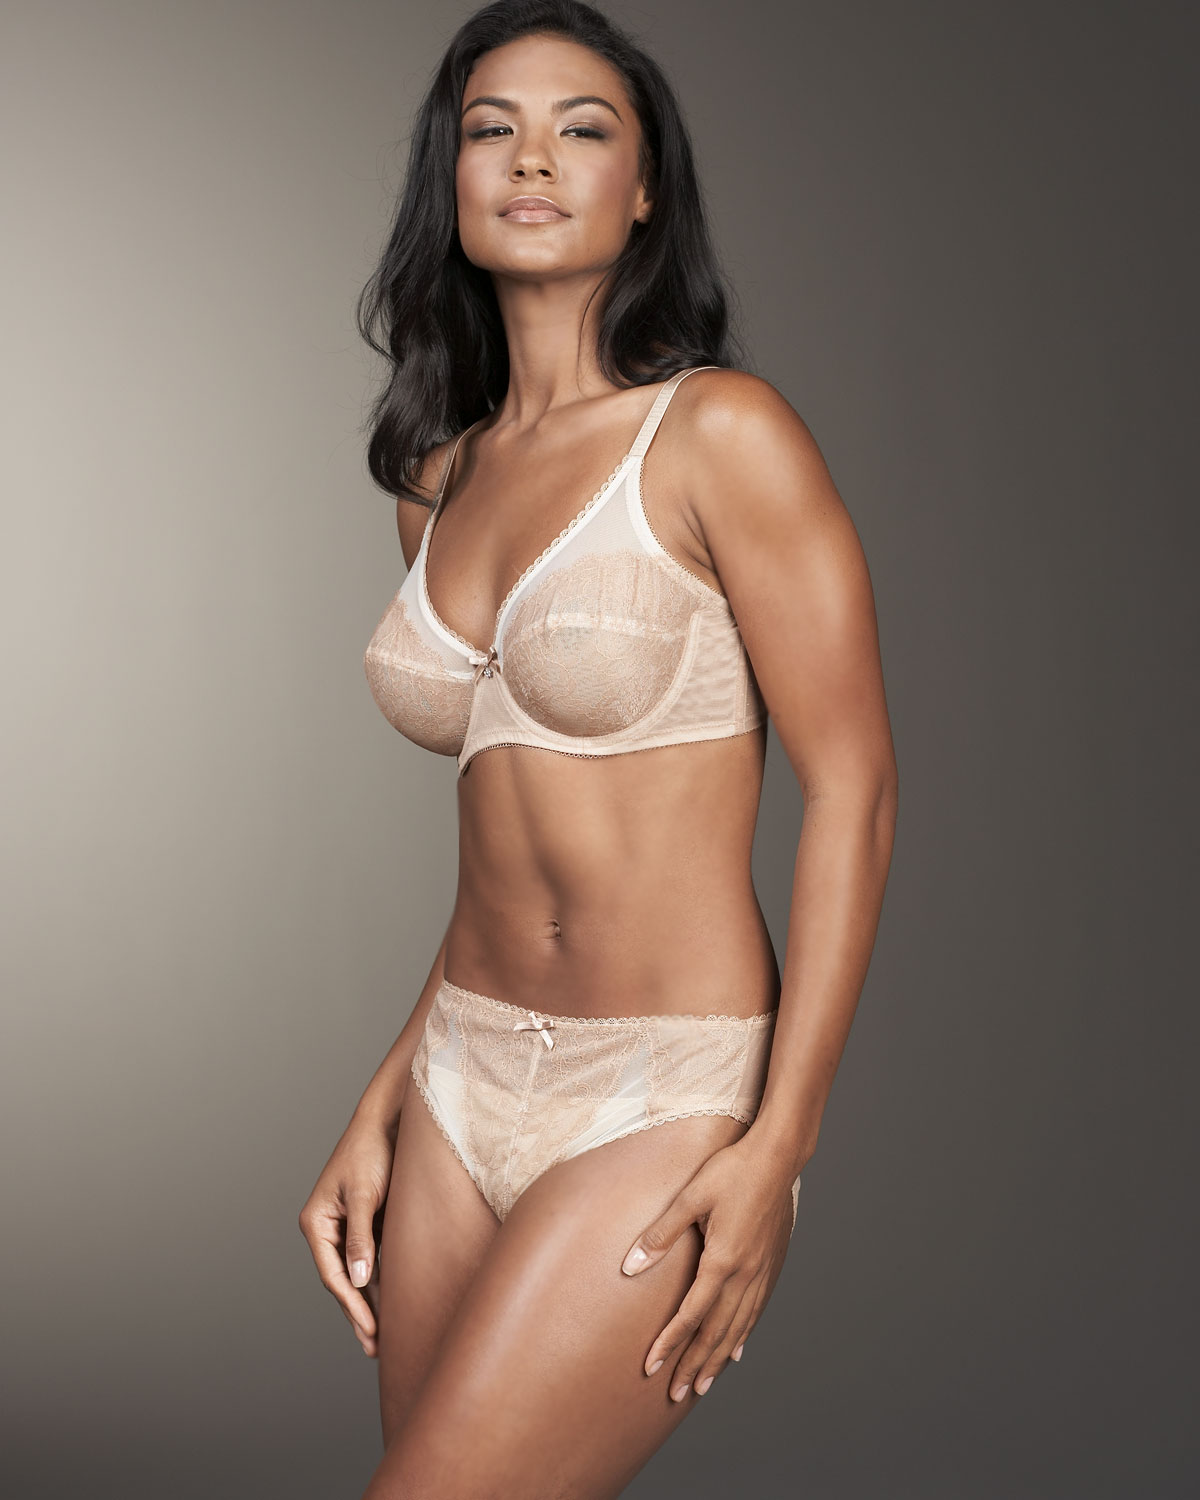 Are Underwear and lingerie wacoal intimates softcup bras improbable!